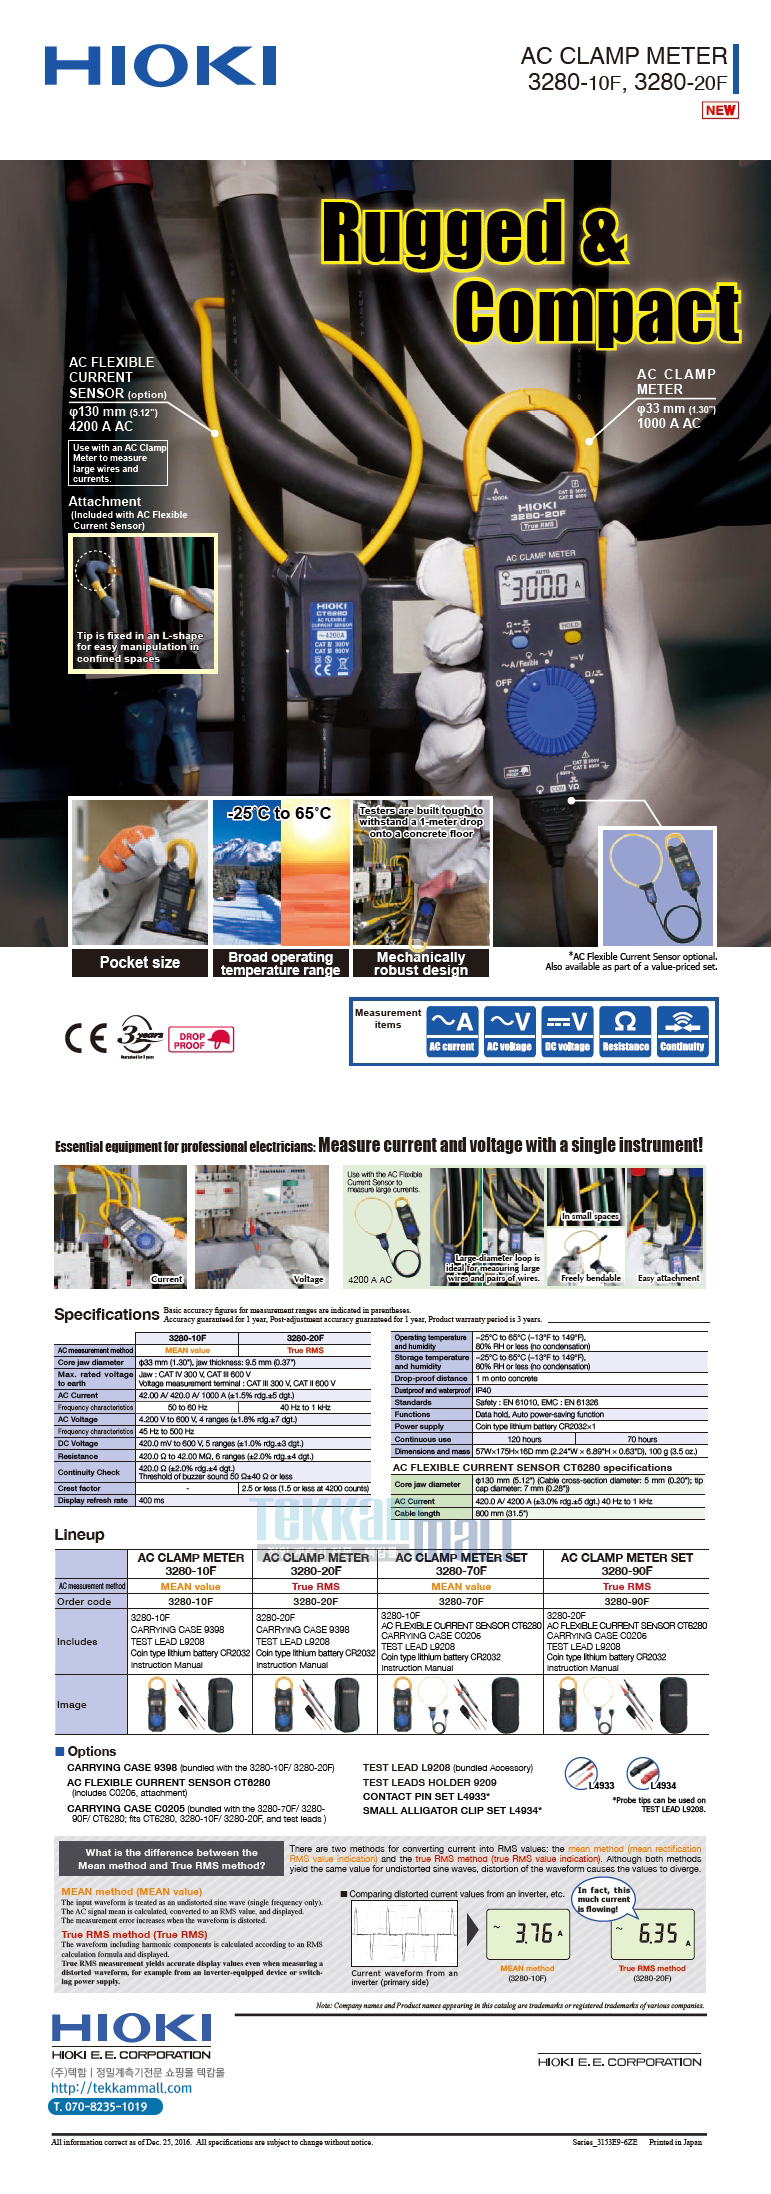 Tekkammall Hioki Clamp Meter Ac 3280 10f 1000a Flexible Current Technical Specifications